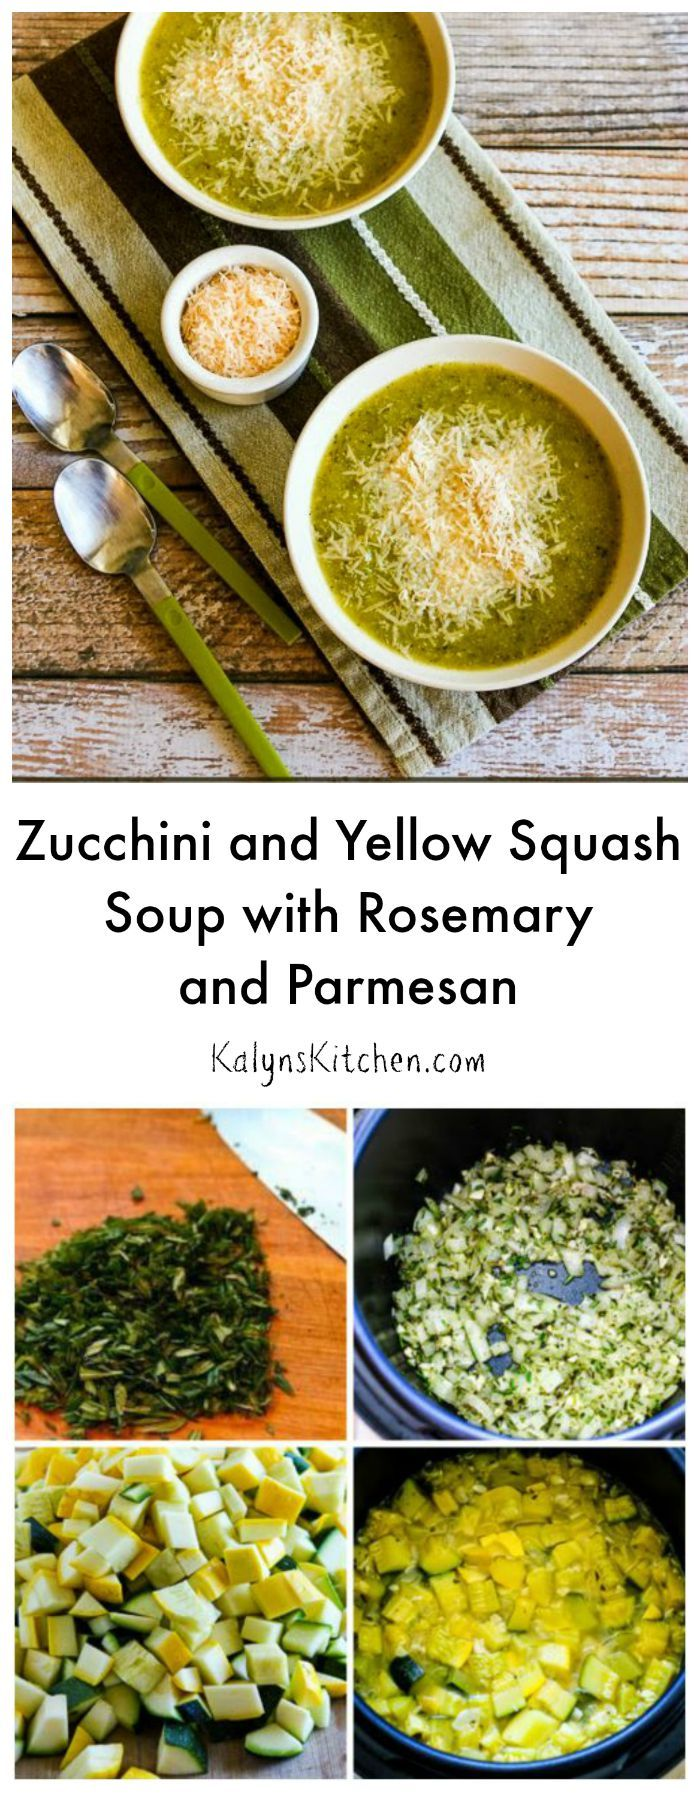 When soup weather arrives, this Zucchini and Yellow Squash Soup with Rosemary and Parmesan makes an easy and delicious dinner. This #LowCarb and #Meatless soup can be made in a #PressureCooker or on the stovetop.  [from KalynsKitchen.com]